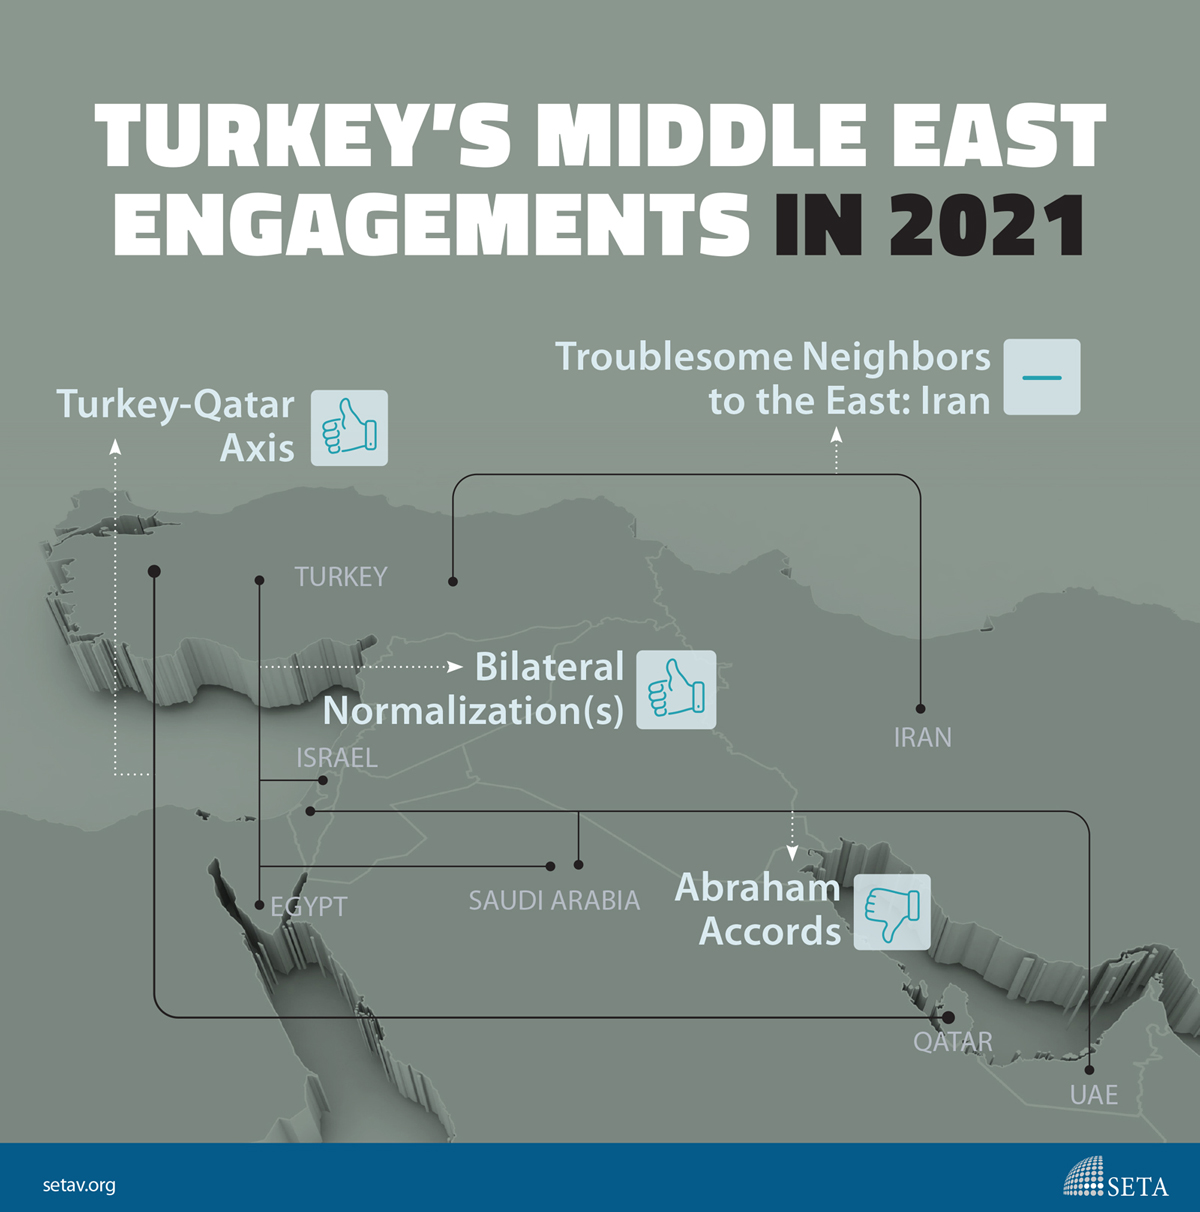 Infographic: Turkey's Middle East Engagements in 2021